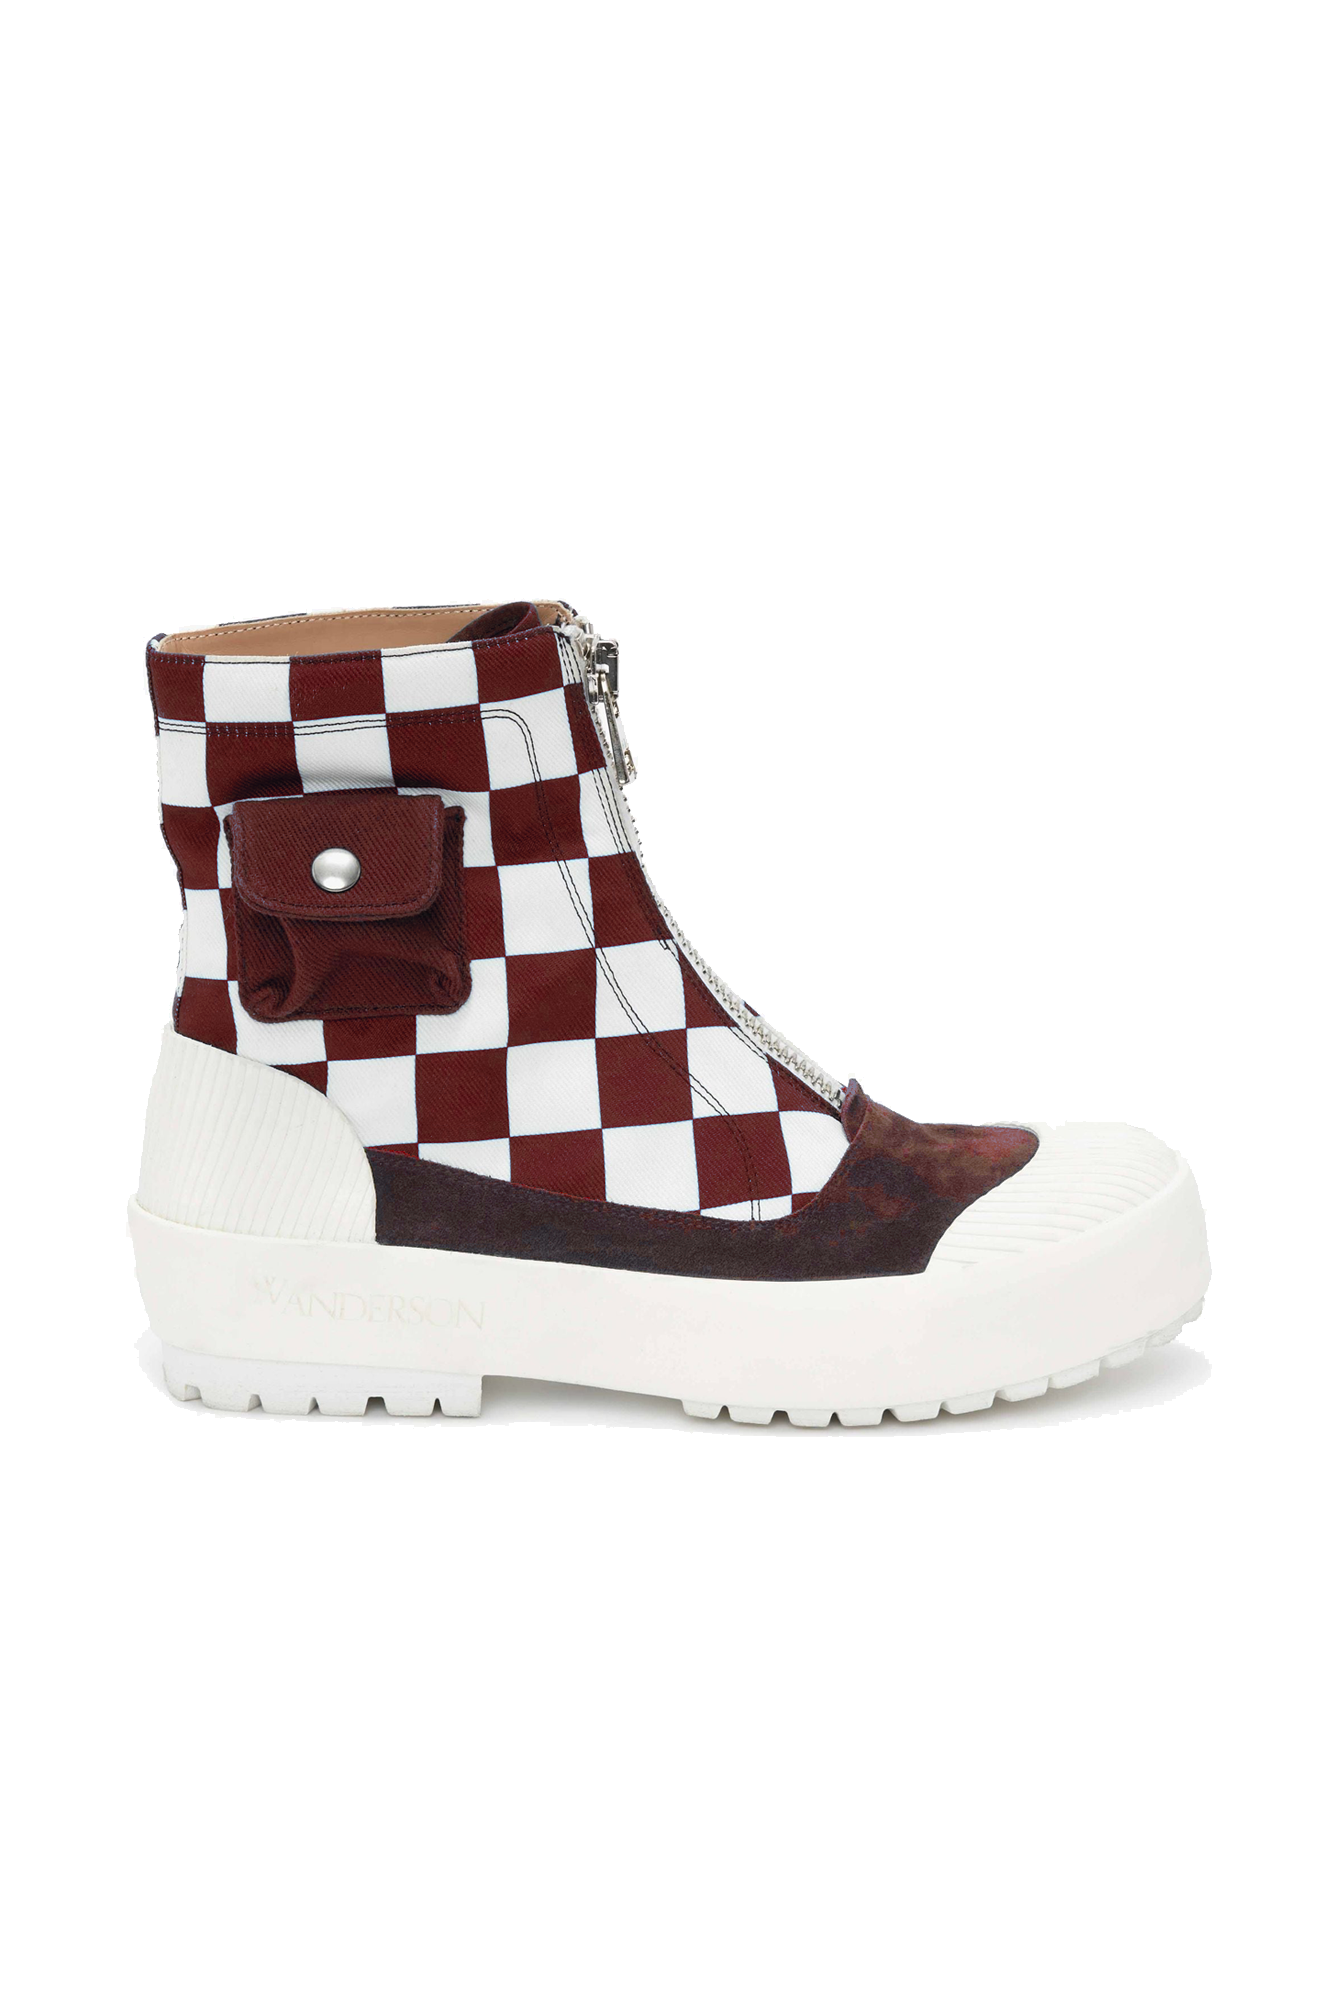 DUCK BOOT IN RED CHECK